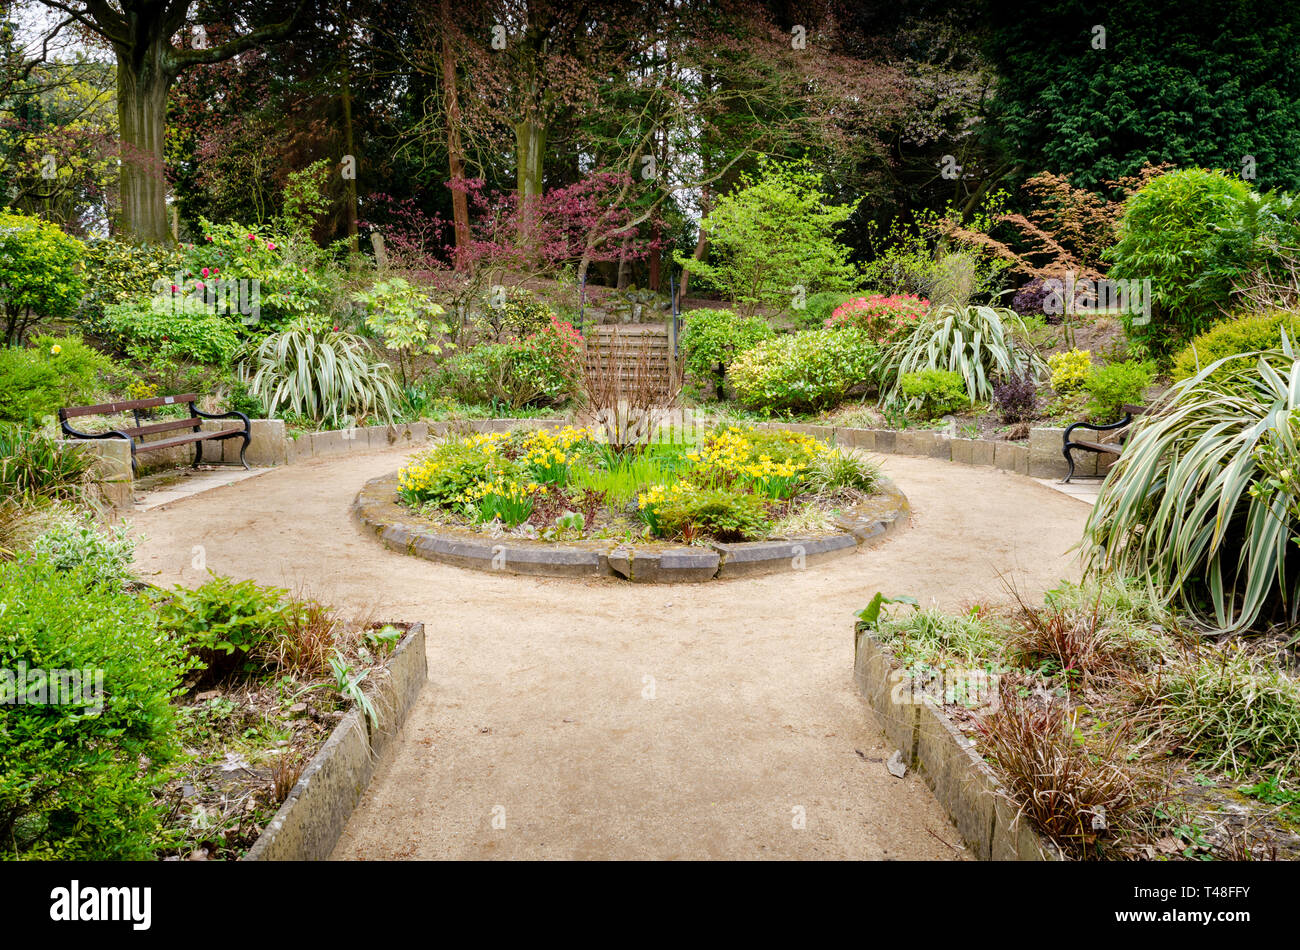 Denzell Gardens and House.  Built by Robert Scott, this house in Bowden, Altrincham features an ornamental pond, vines, orchids, and a sunken garden. - Stock Image